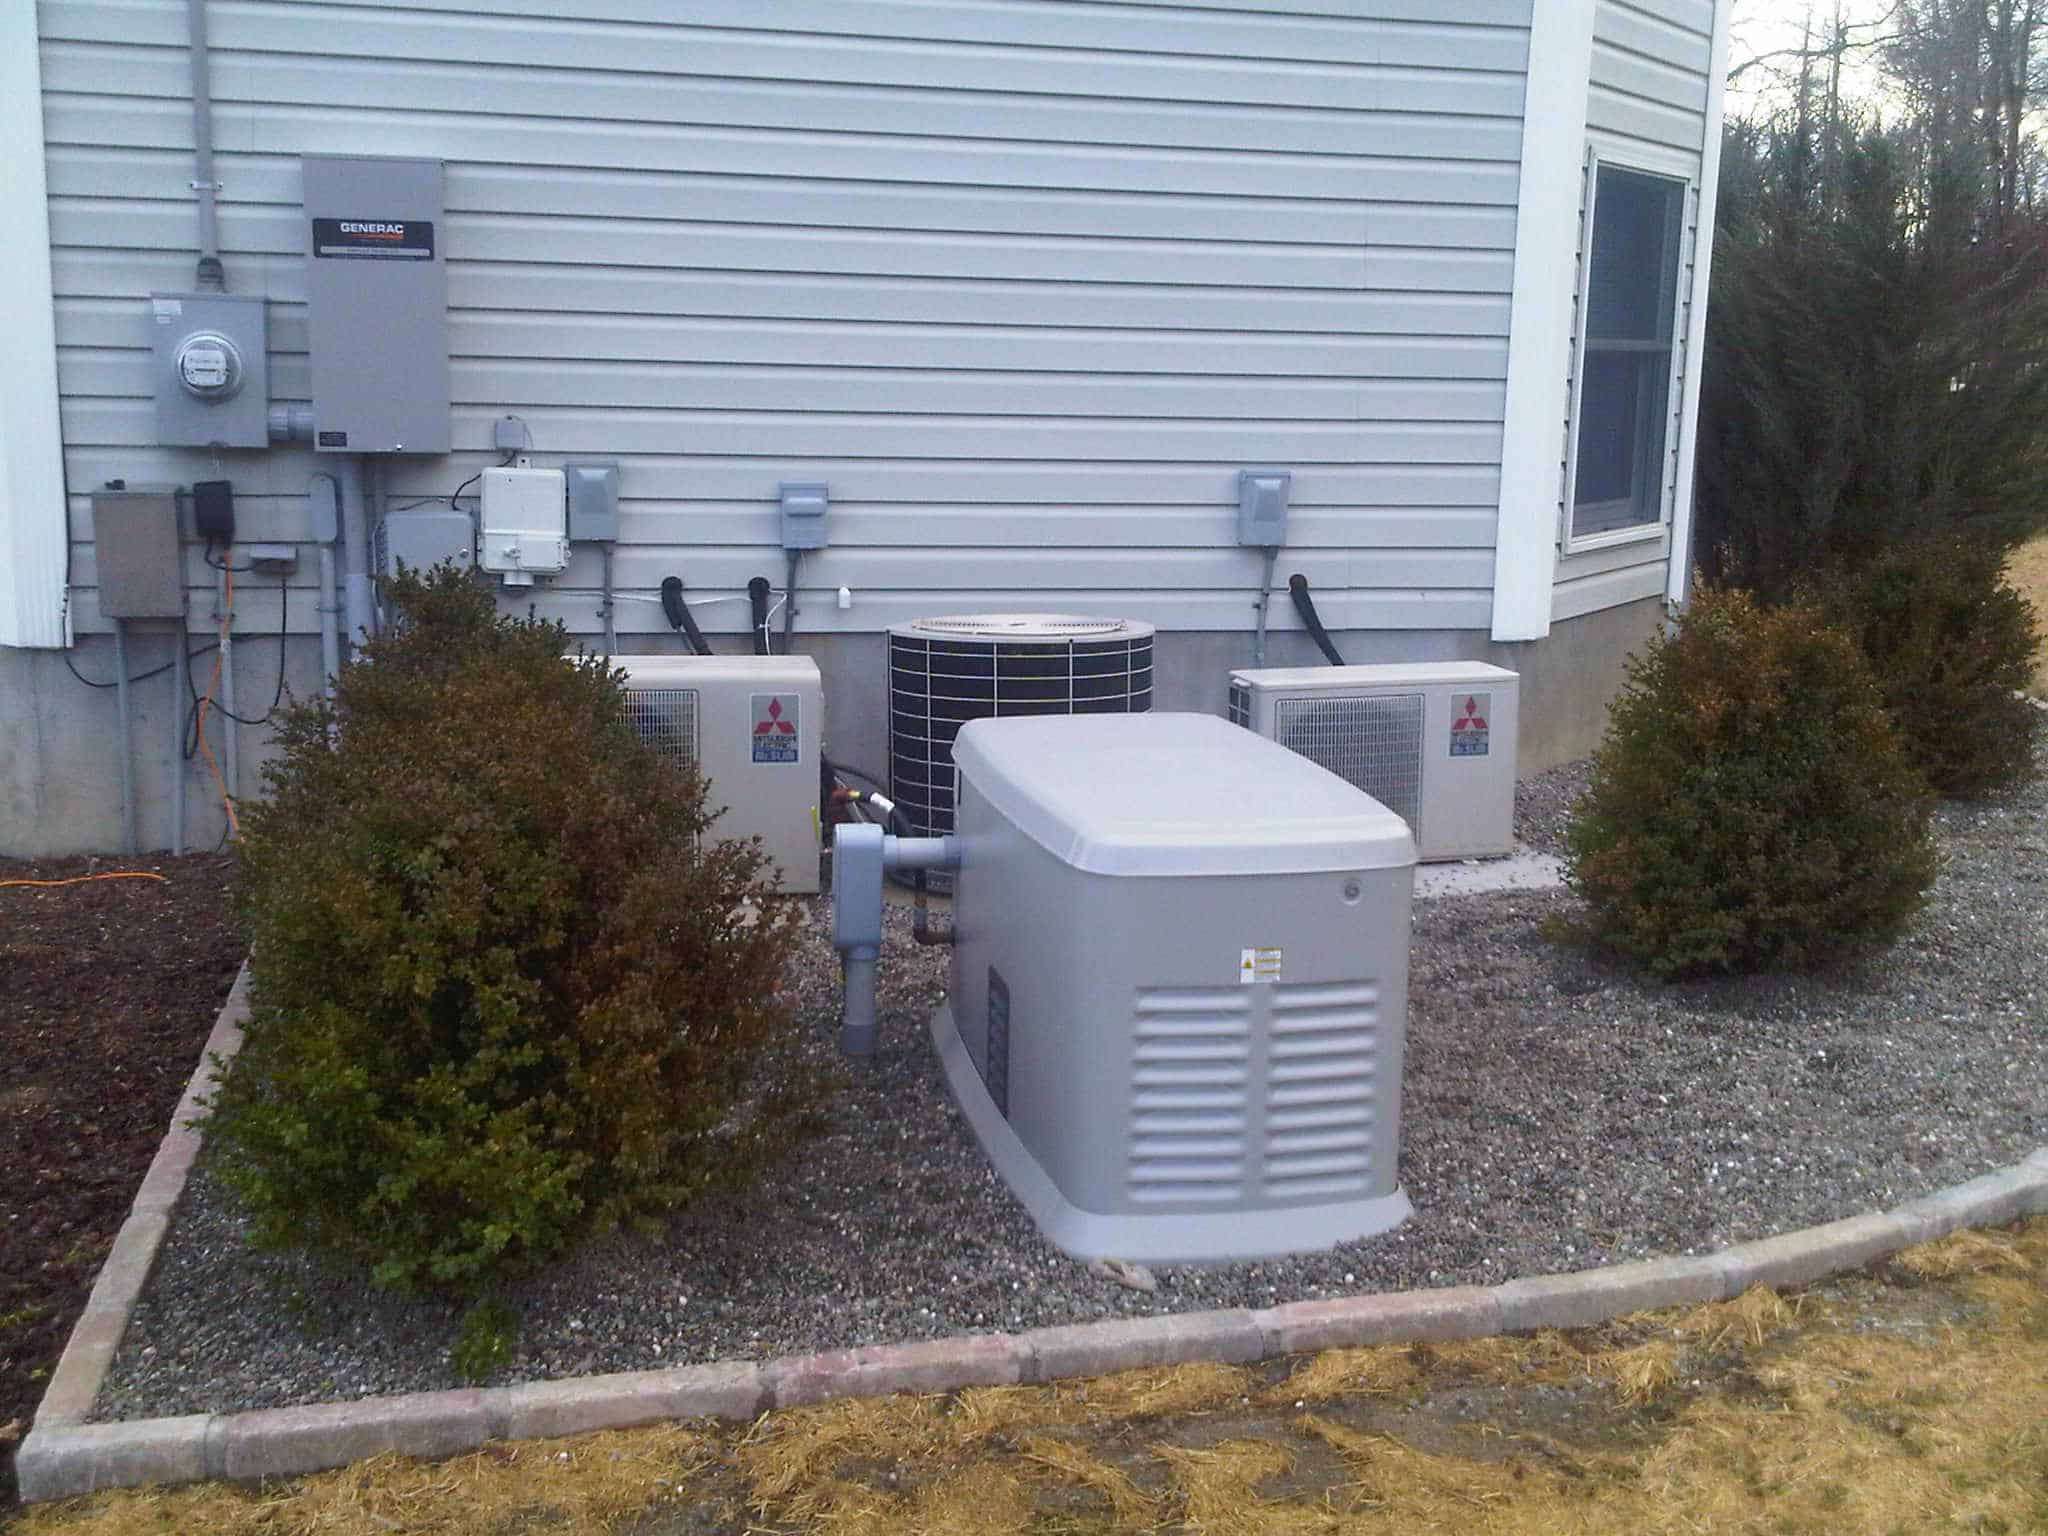 Standby Generators Protect Your Home During Winter Power Outages Onan Propane Generator Wiring Diagram A Ready To Automatically Provide An Outage